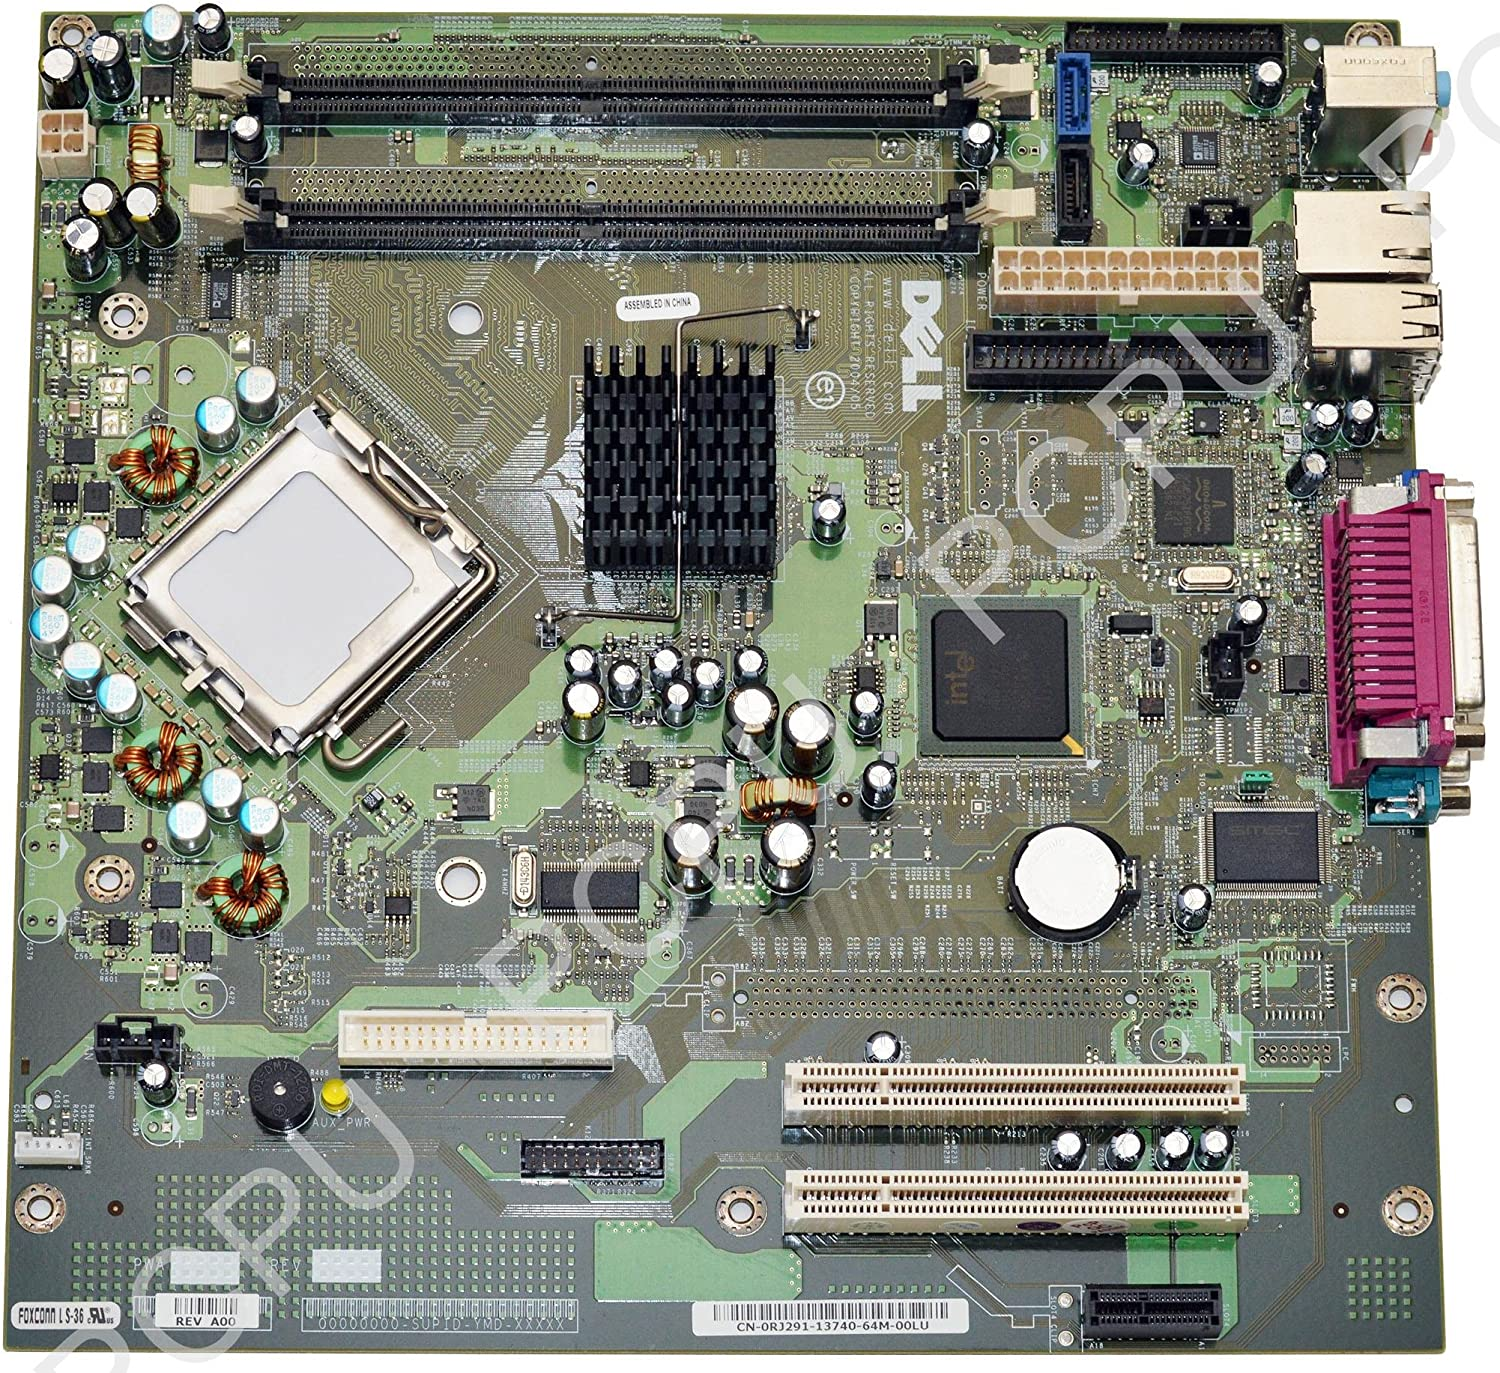 RJ291 Dell Optiplex GX520 Desktop Intel Motherboard RJ291 0RJ291